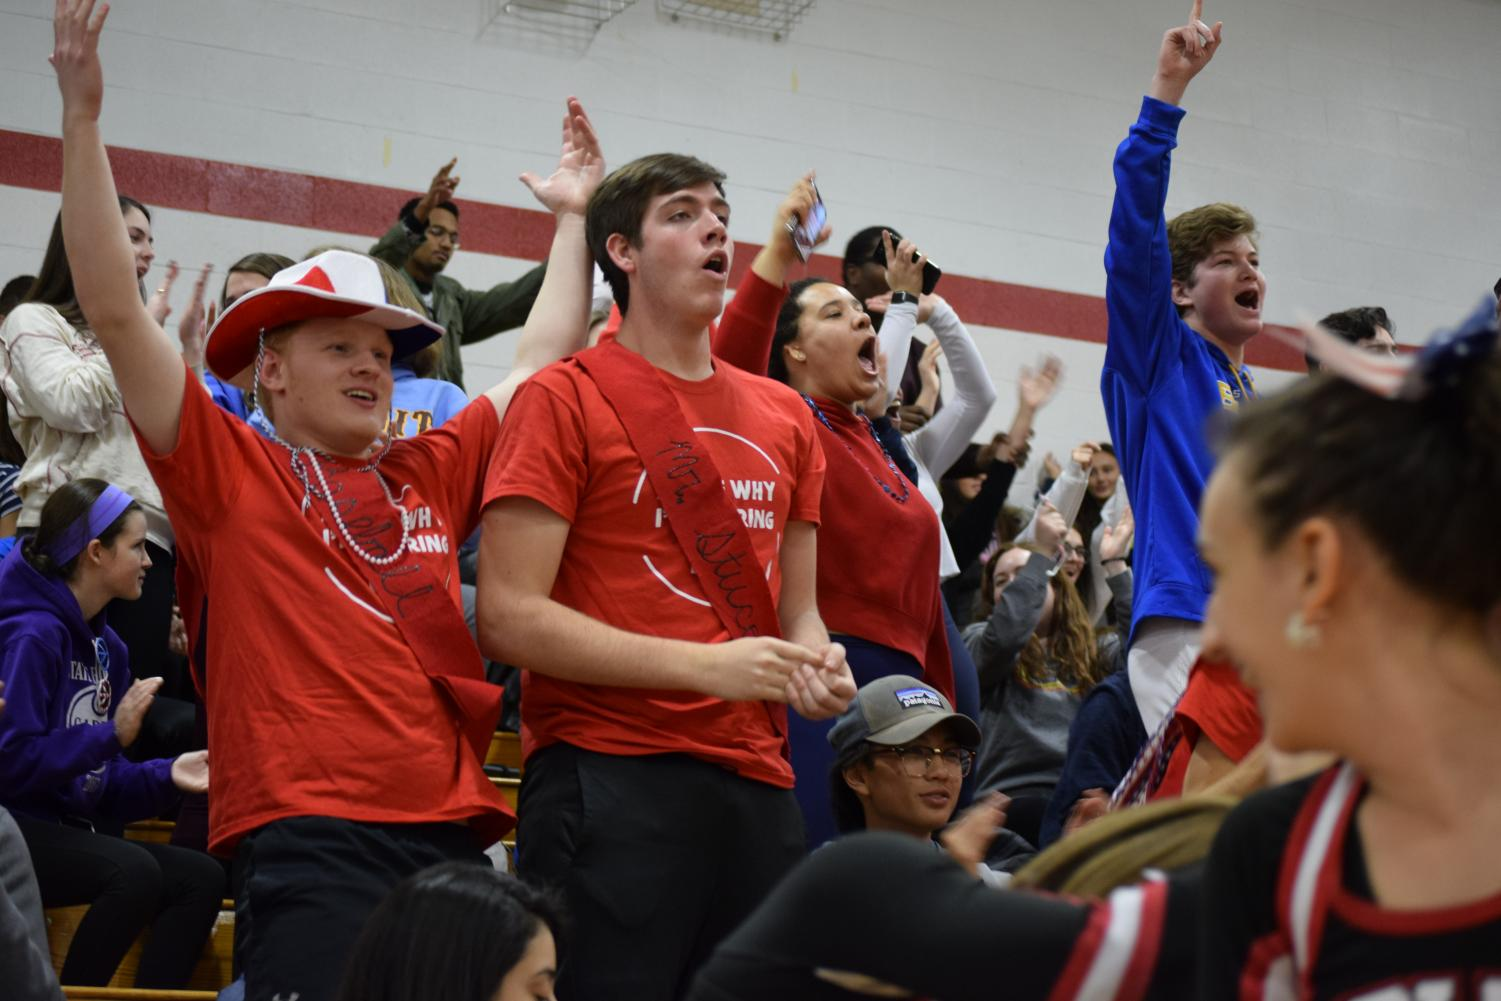 Students Eric White and Jacob Nenninger cheer at the Winter Pep Rally.